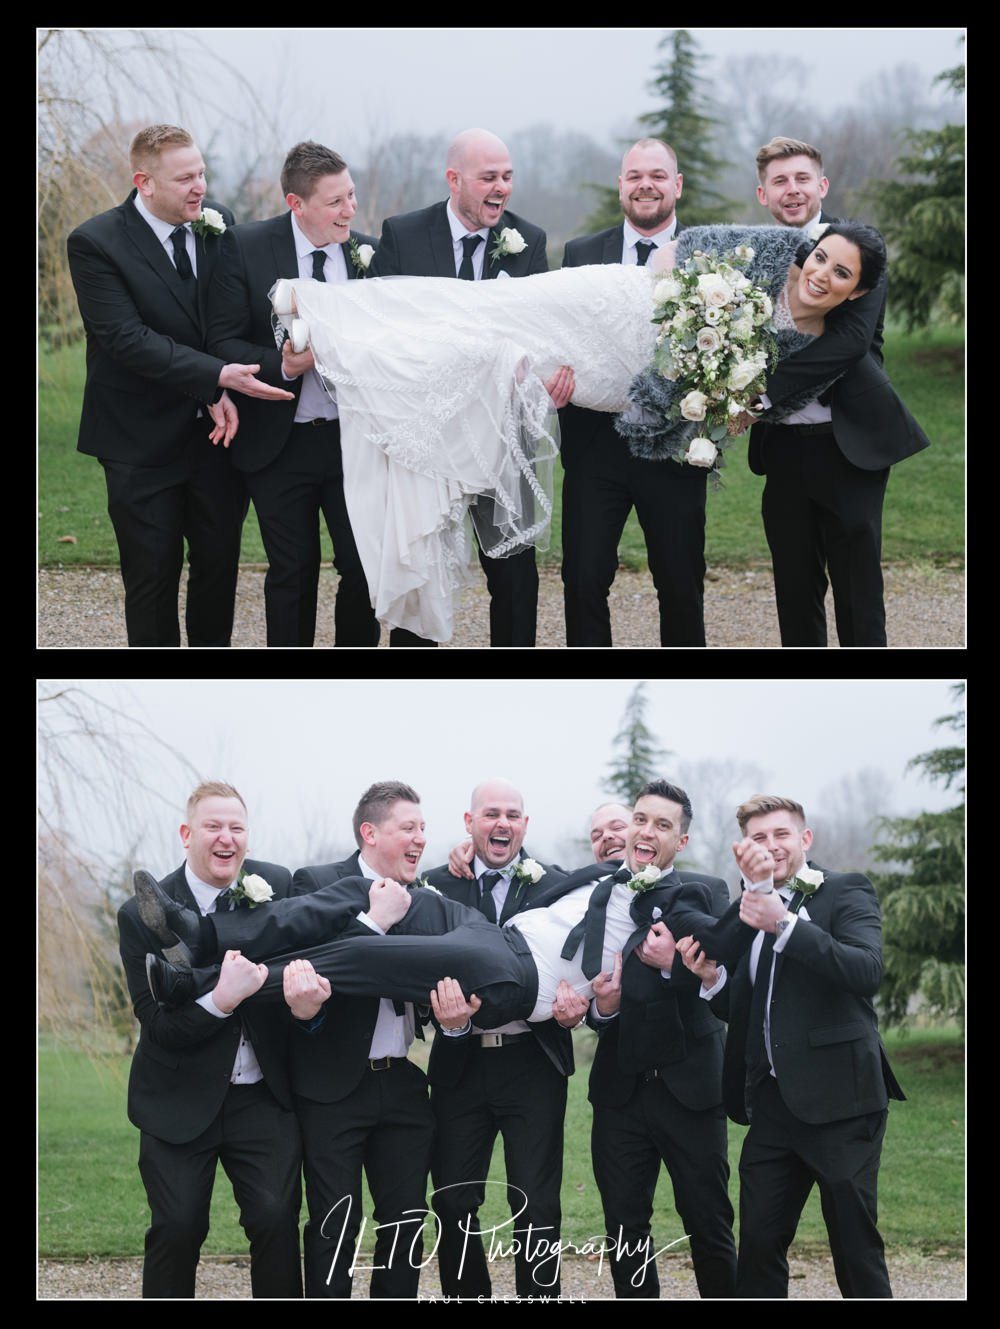 Funny and personal wedding photography.